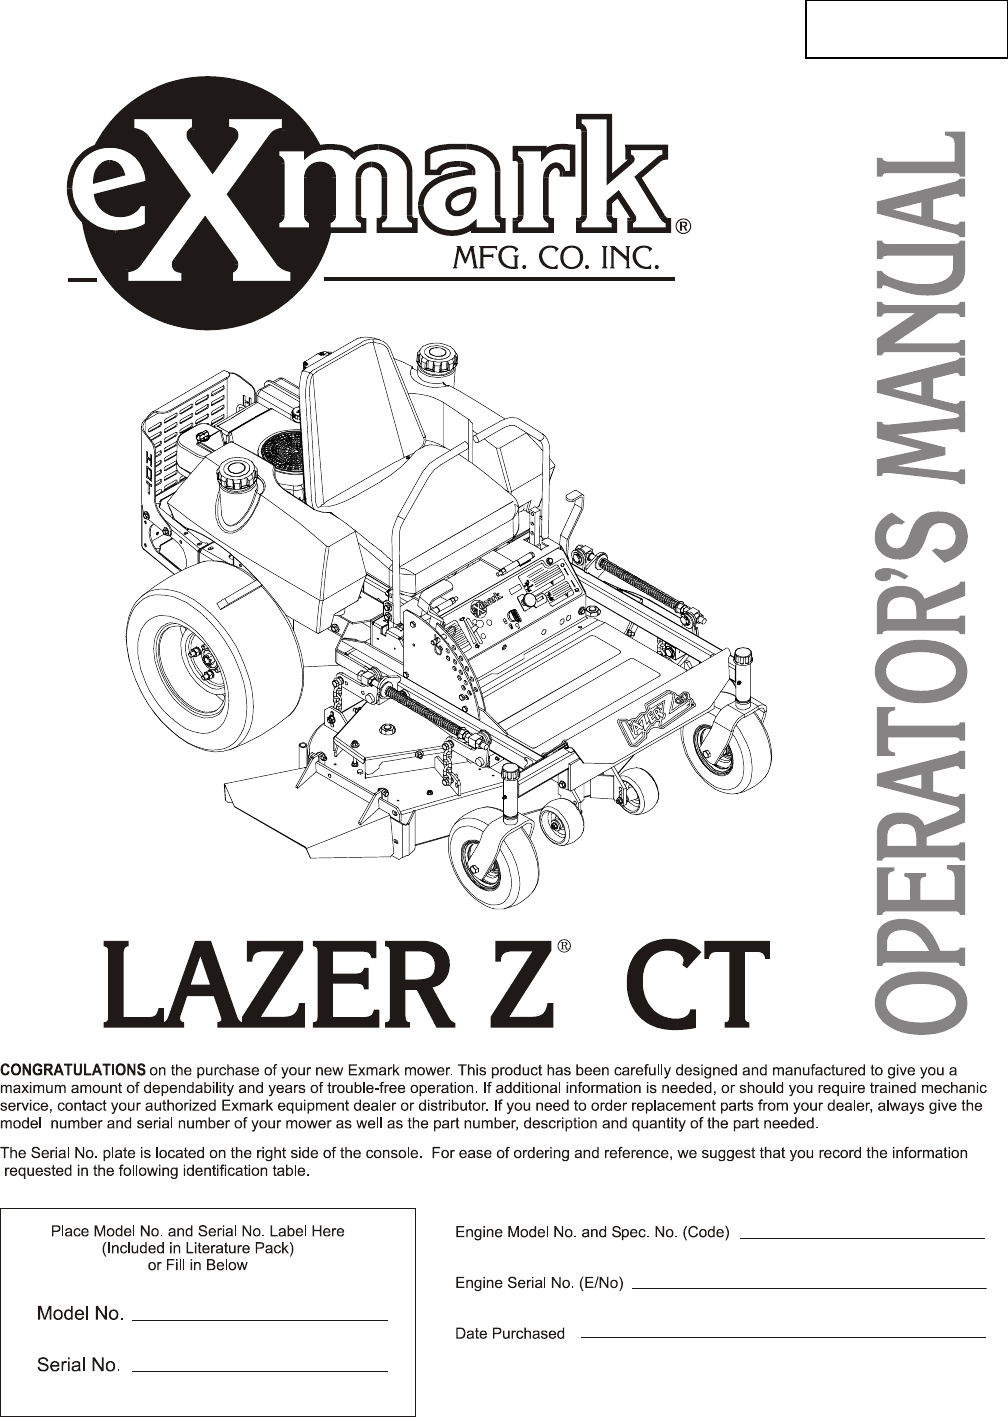 exmark lawn mower lazer z ct user guide manualsonline com rh lawnandgarden manualsonline com Exmark Lazer CT 44 With Ultra Vac Exmark Lazer Z 60